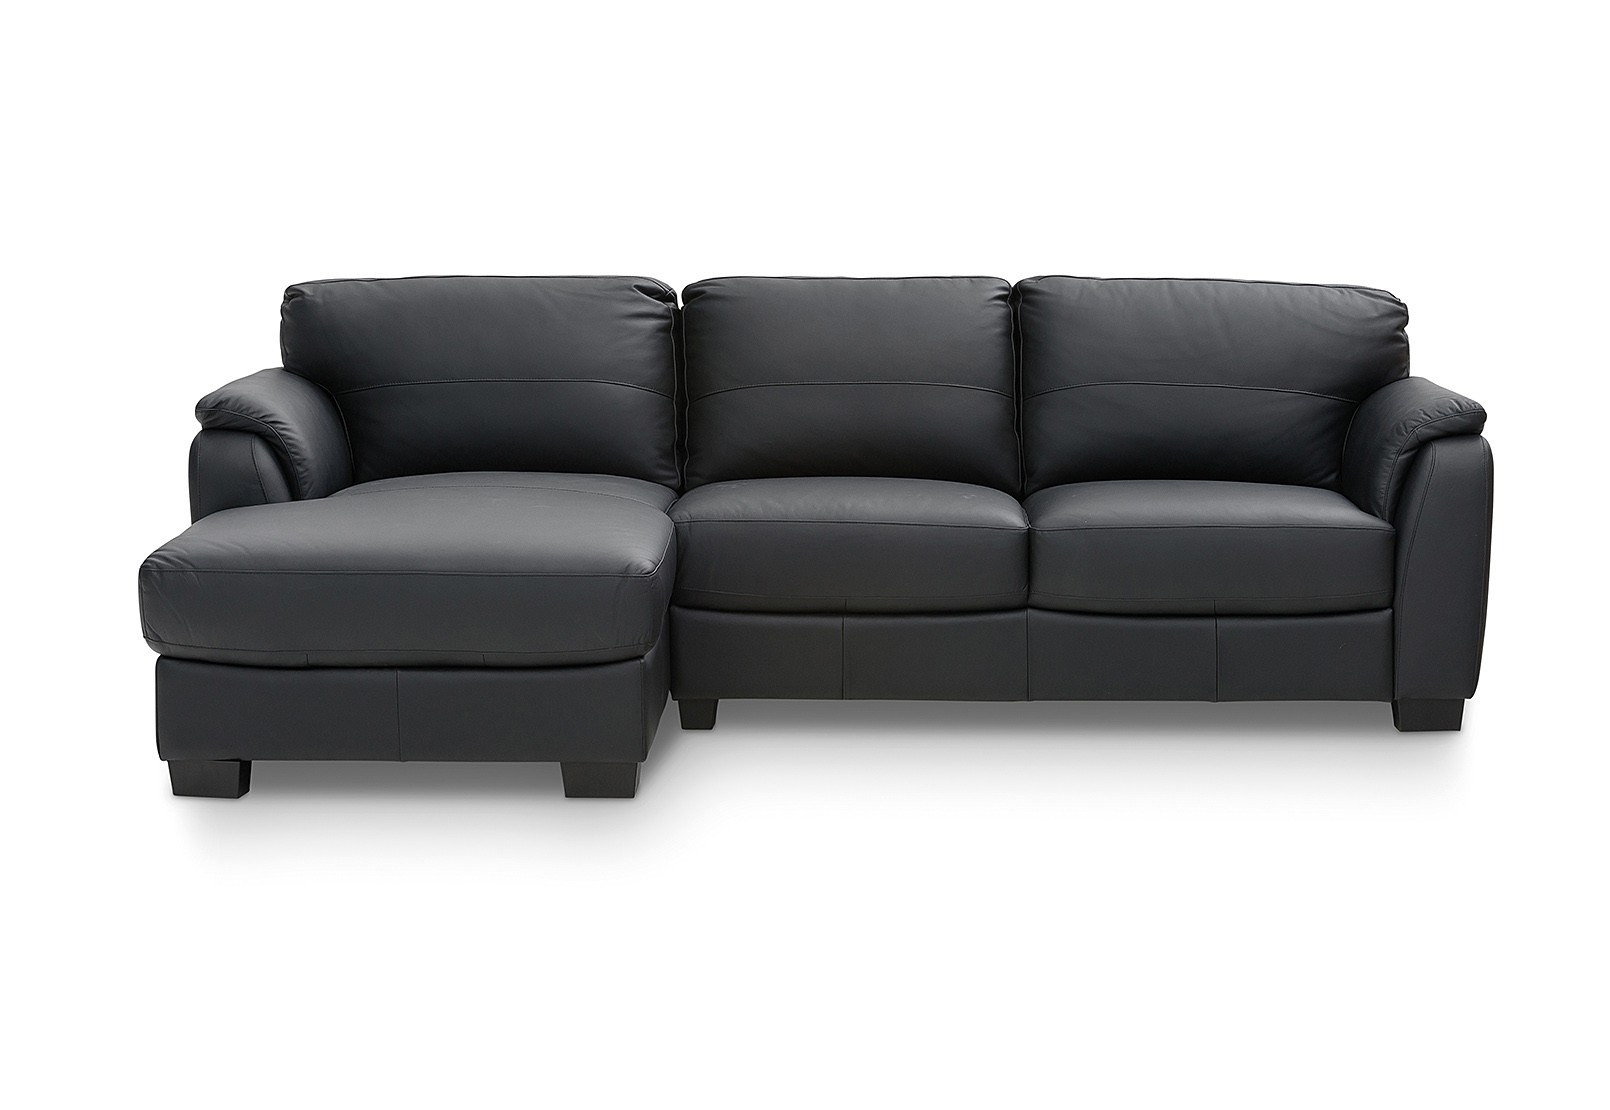 Grey Leather Sectional Sofa You Love American Made Sofas Serta Bed 2 In Marissa Ii 3 Piece Sectionals (View 11 of 25)